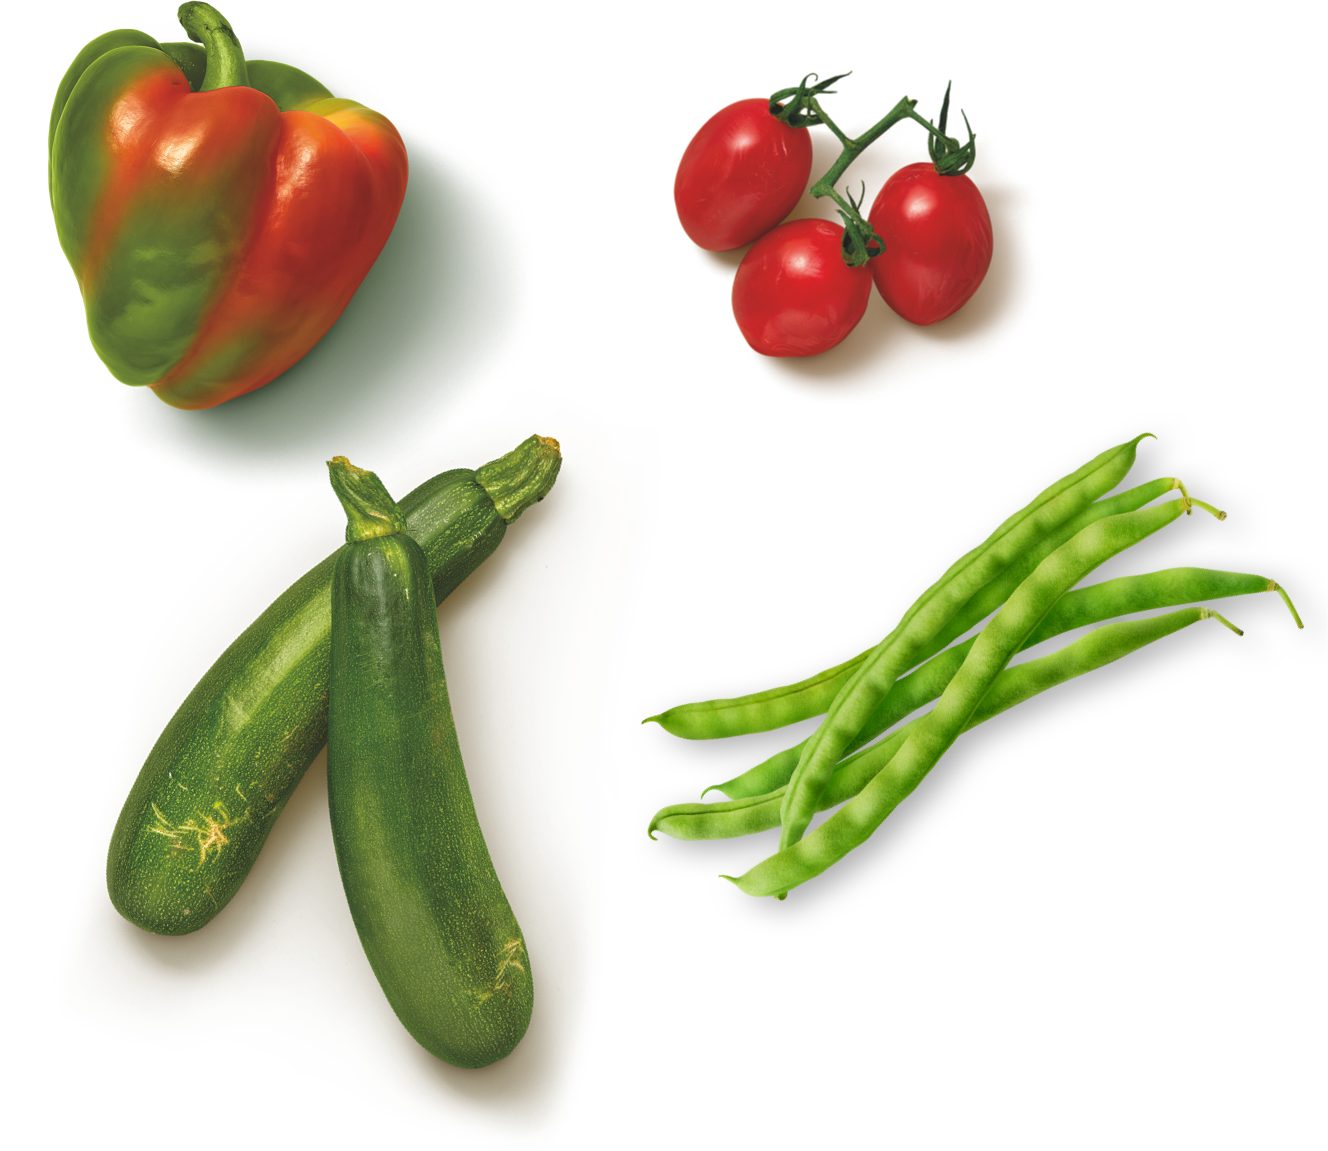 Veggies you will find in Dirt Kitchen Snacks: blushed peppers, zucchini, grape tomatoes, and greenbeans.